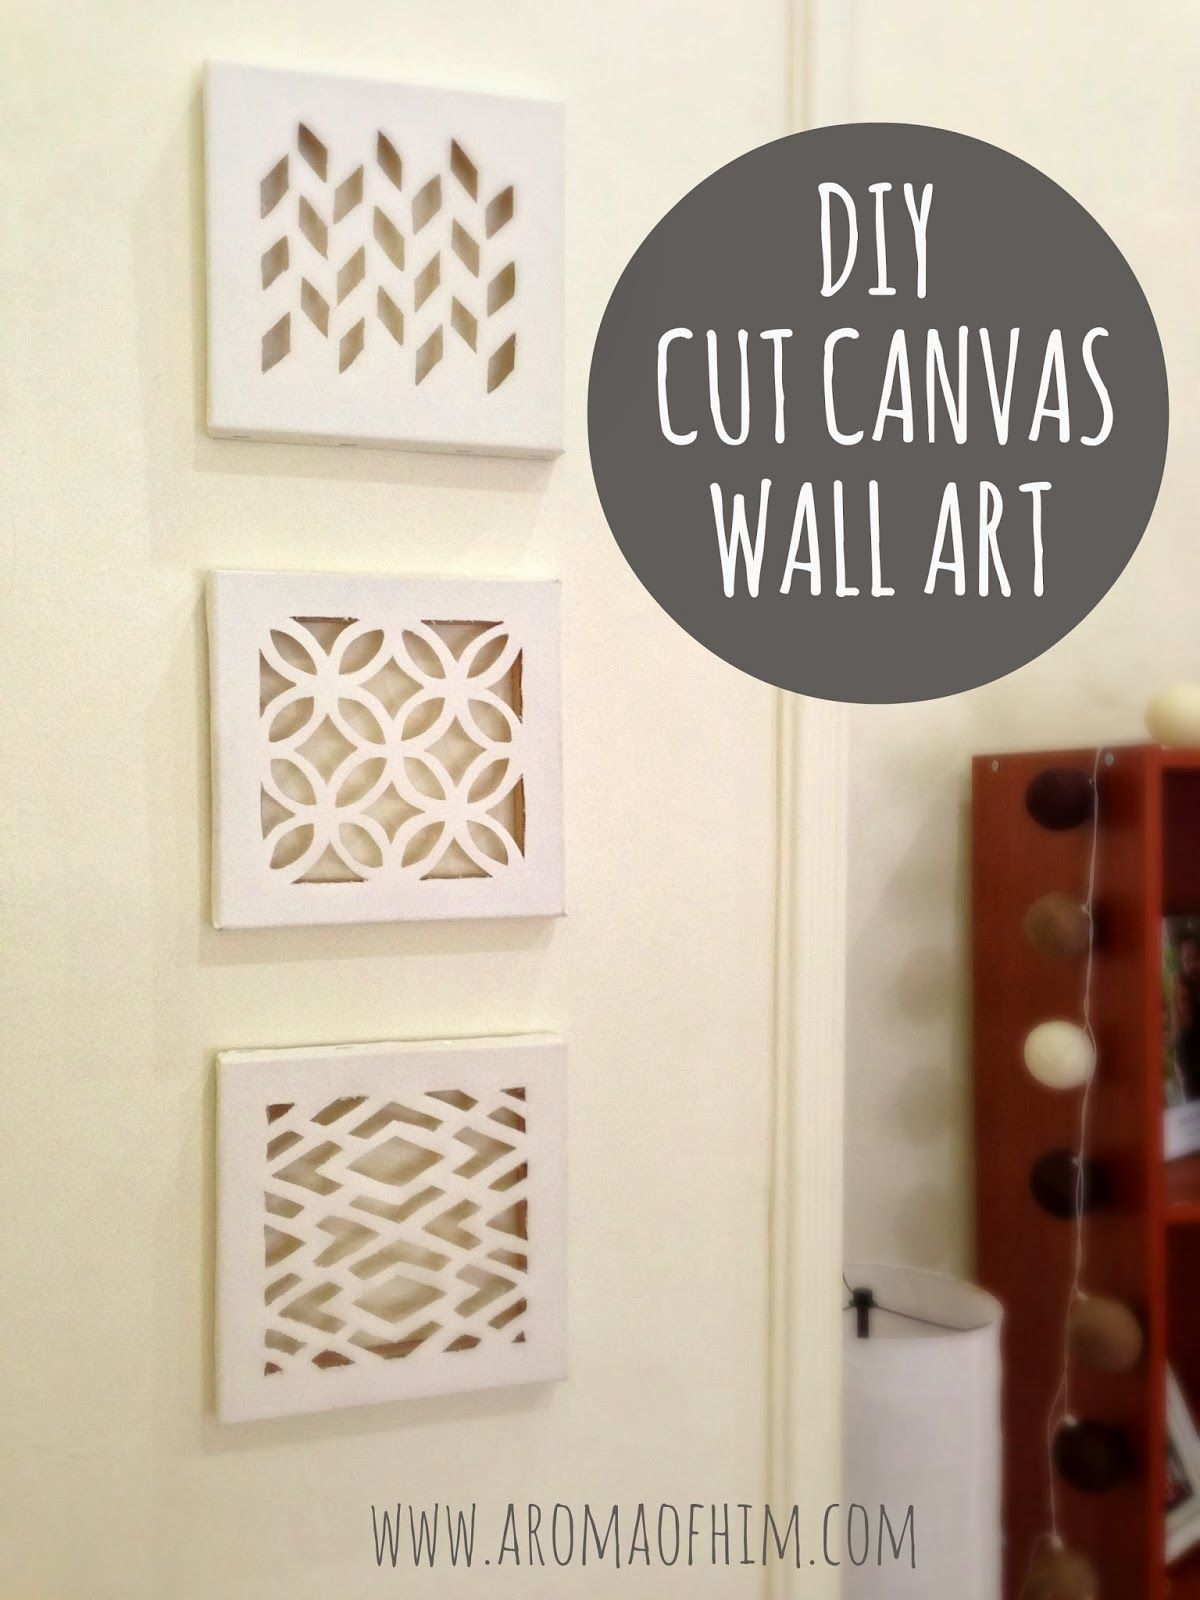 Diy Wall Decor 76 Brilliant Diy Wall Art Ideas For Your Blank Walls Cut Canvas